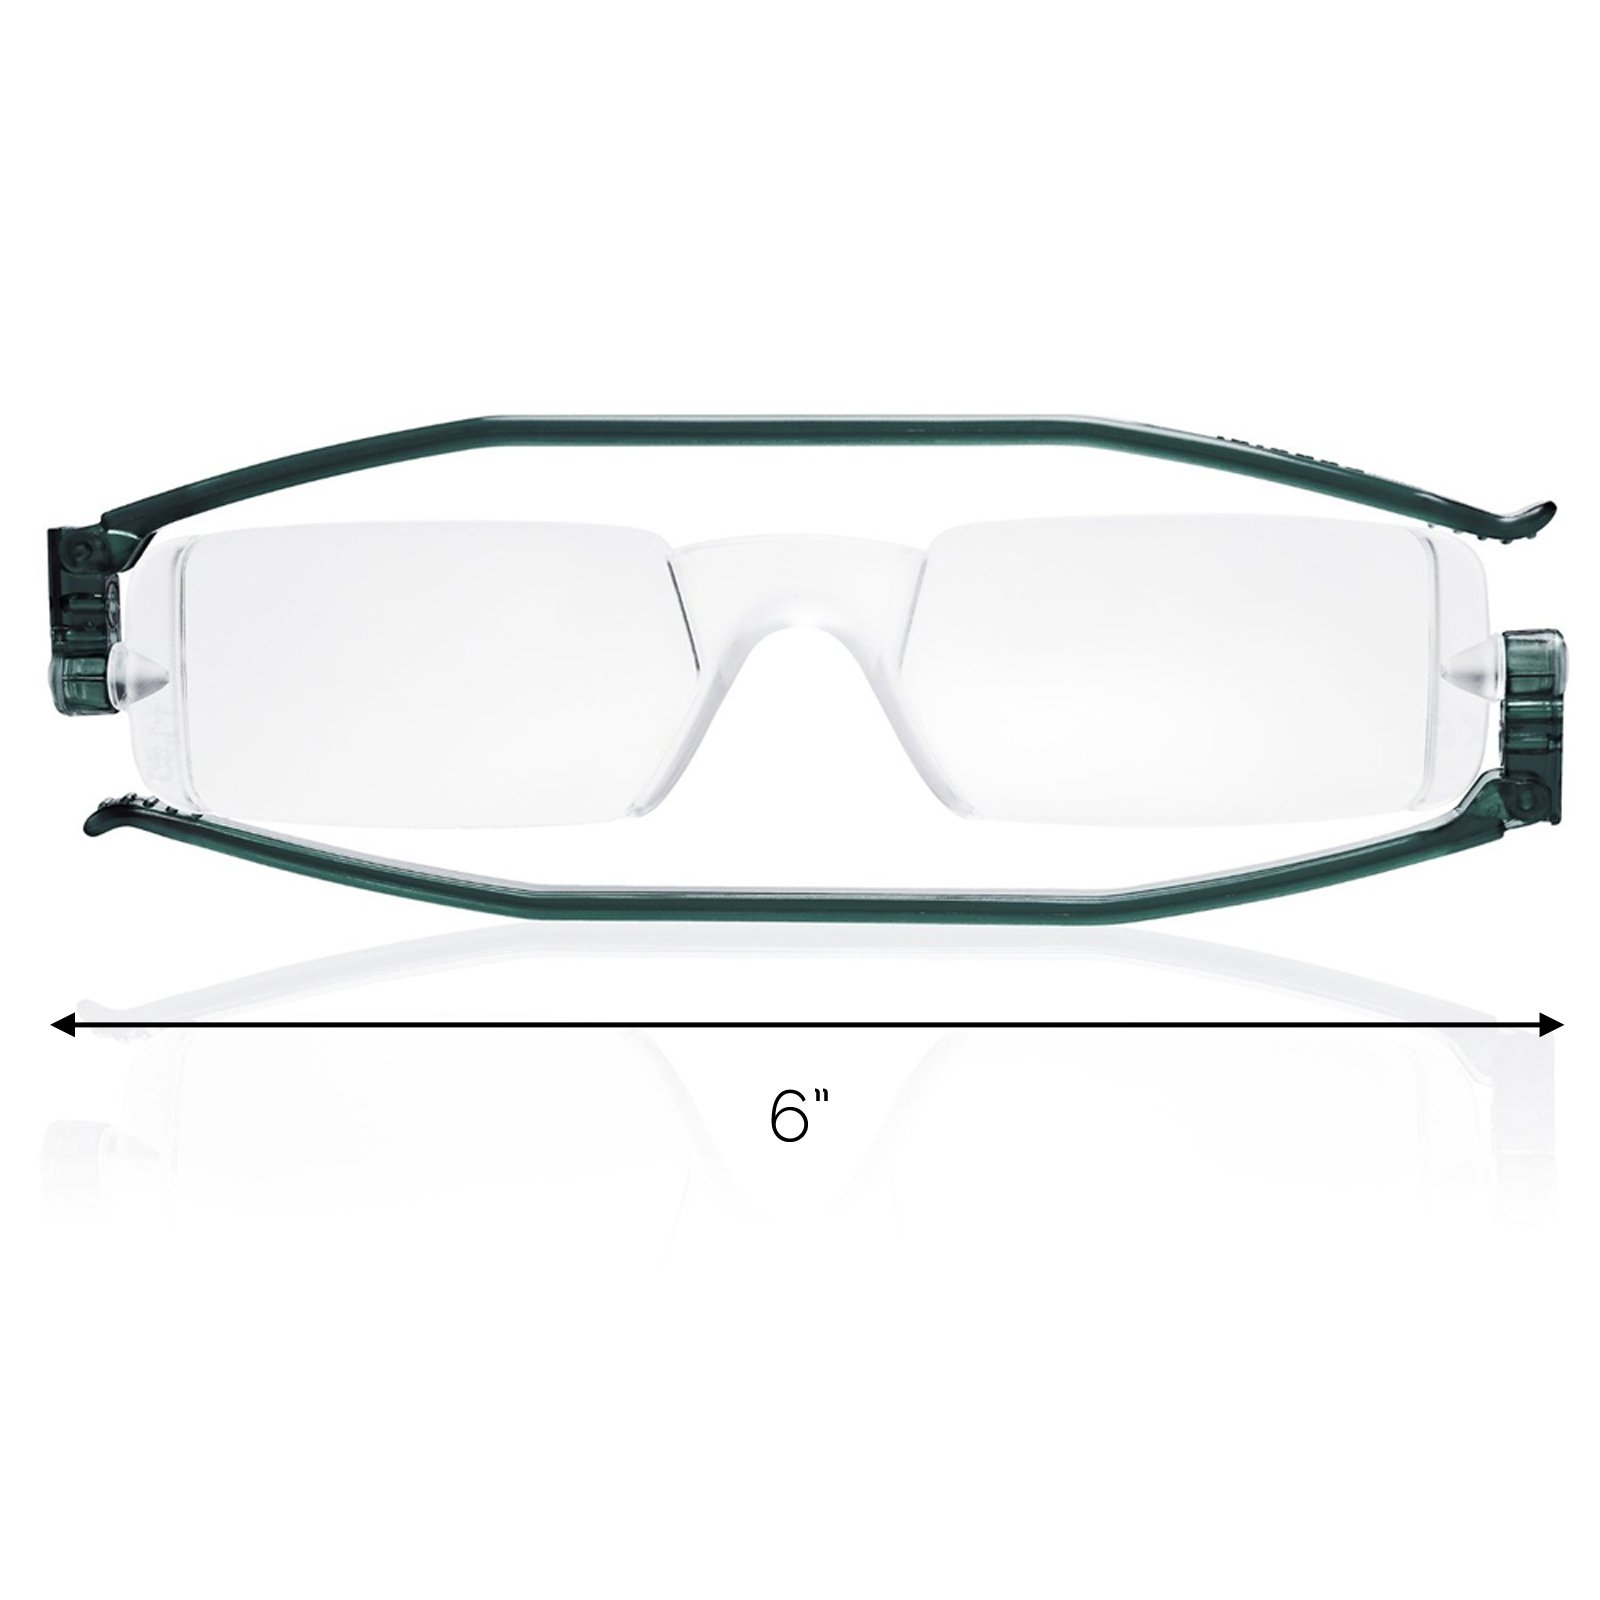 Reading Glasses Nannini Italy Vision Care Unisex Ultra Thin Readers - Grey 2.0